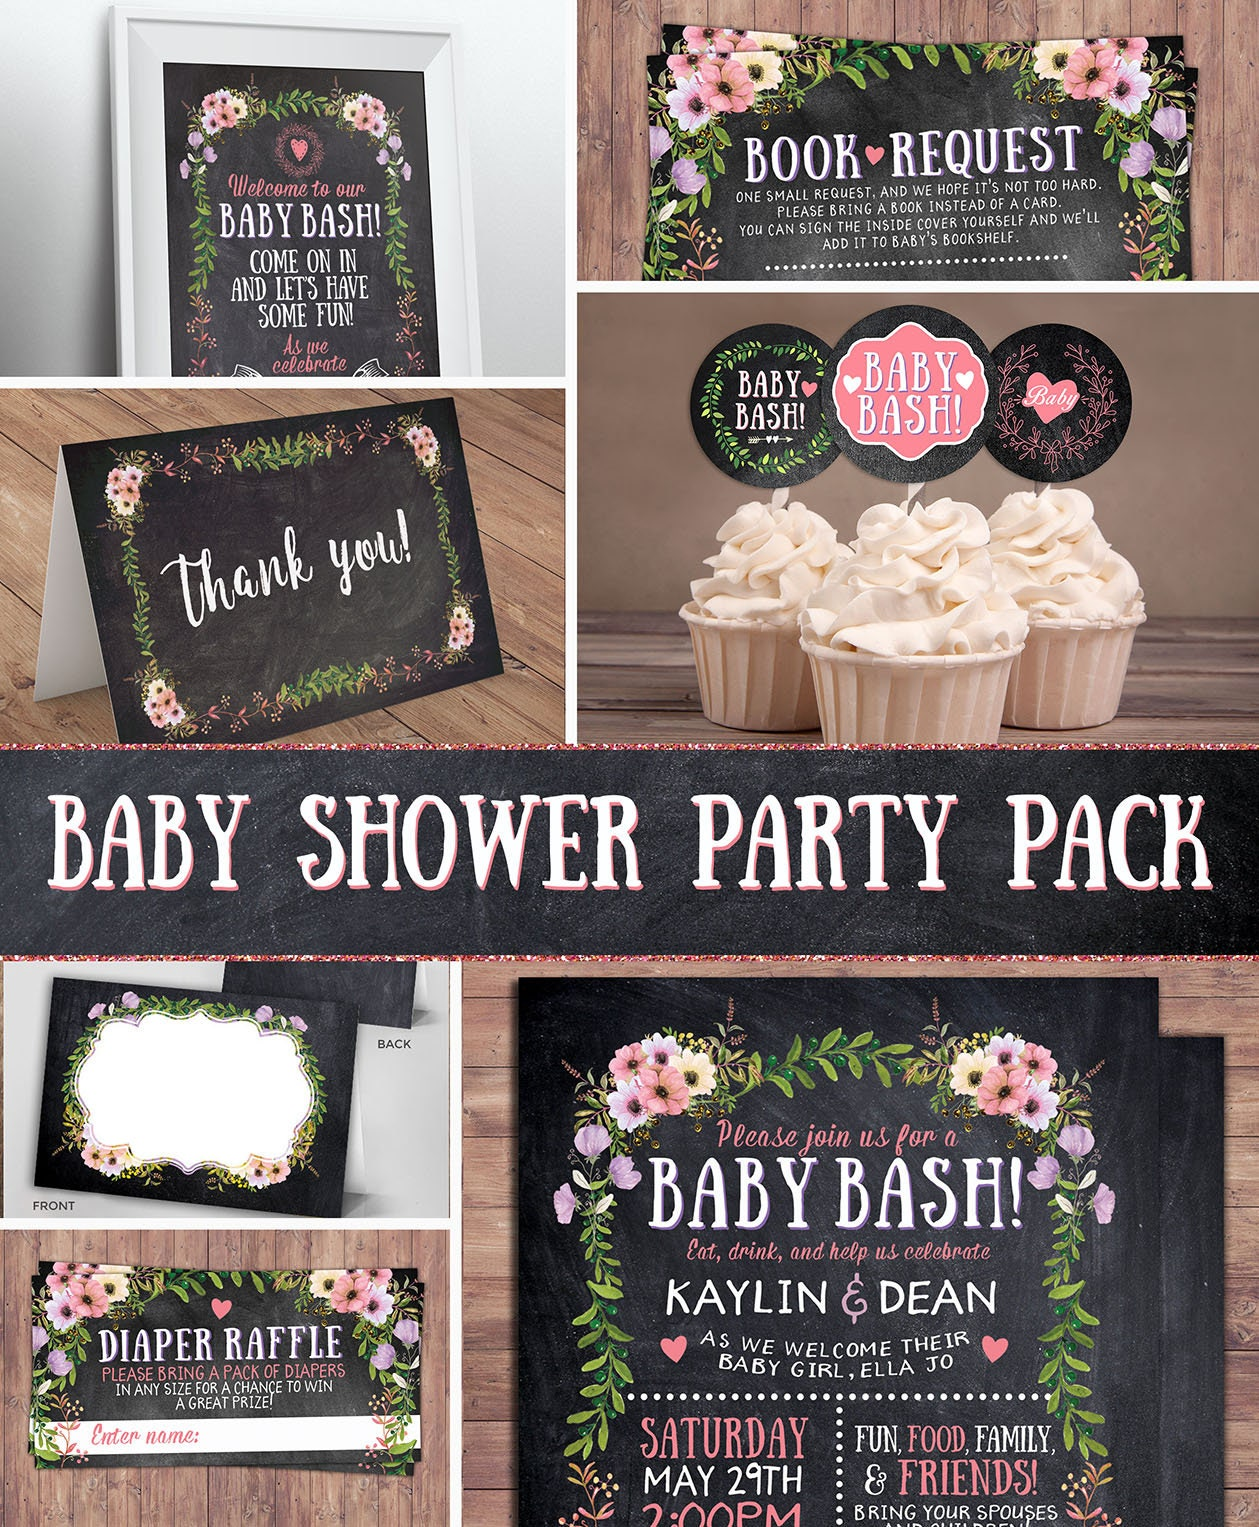 Floral, Rustic, BOHO, BabyQ Chalkboard Couples Co Ed Baby Shower BBQ  Invitation   Babyq   Boy Girl  Baby Is Brewing, Baby Girl Shower